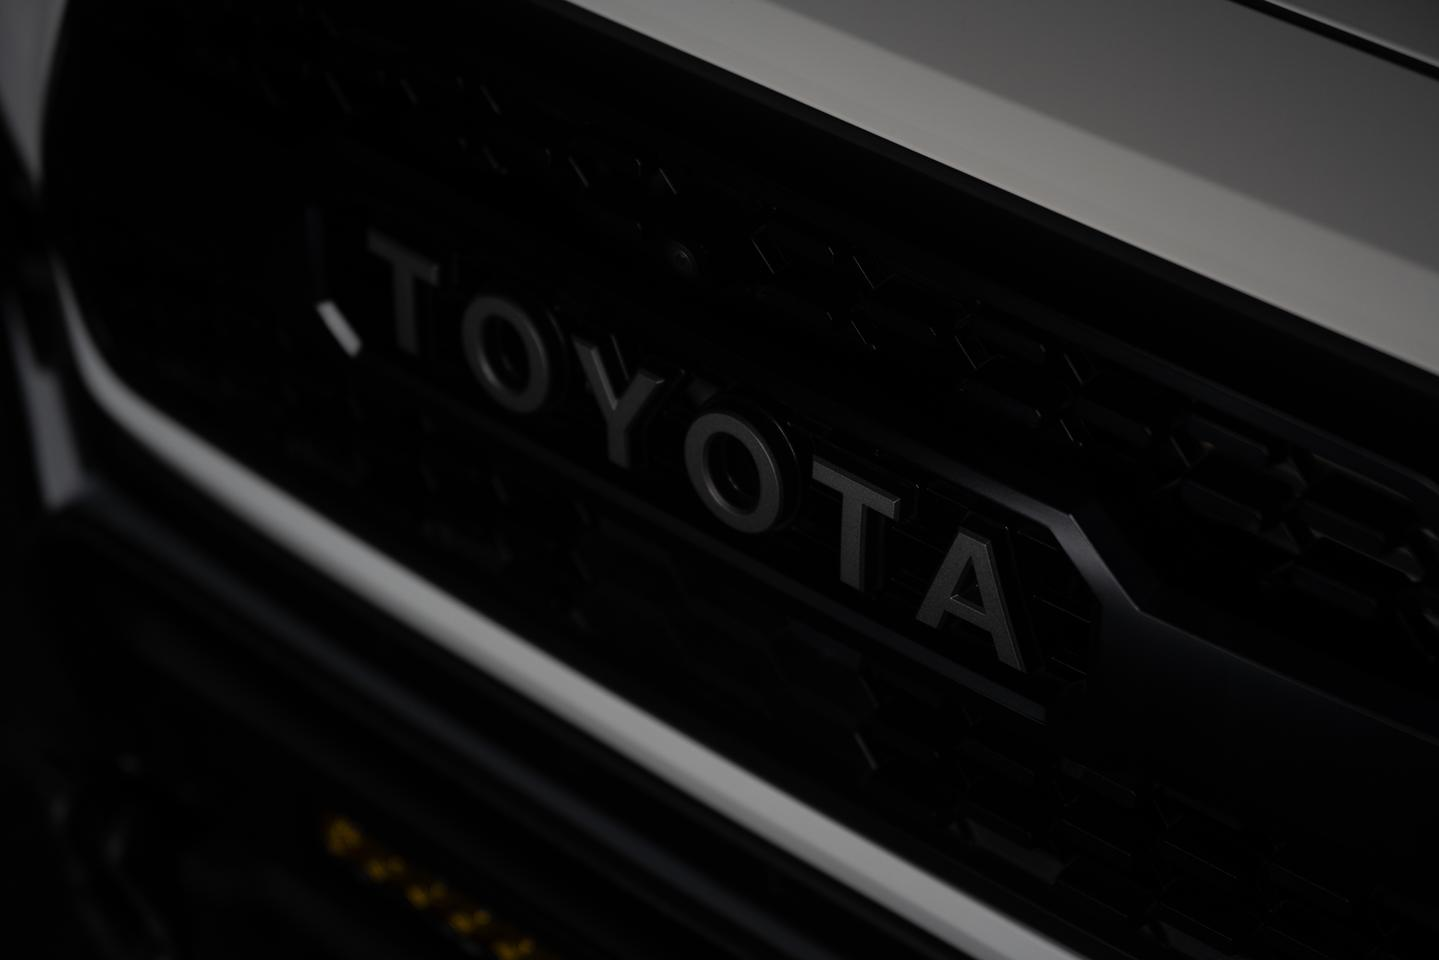 A neatly-integrated Toyota expedition vehicle lands in the US